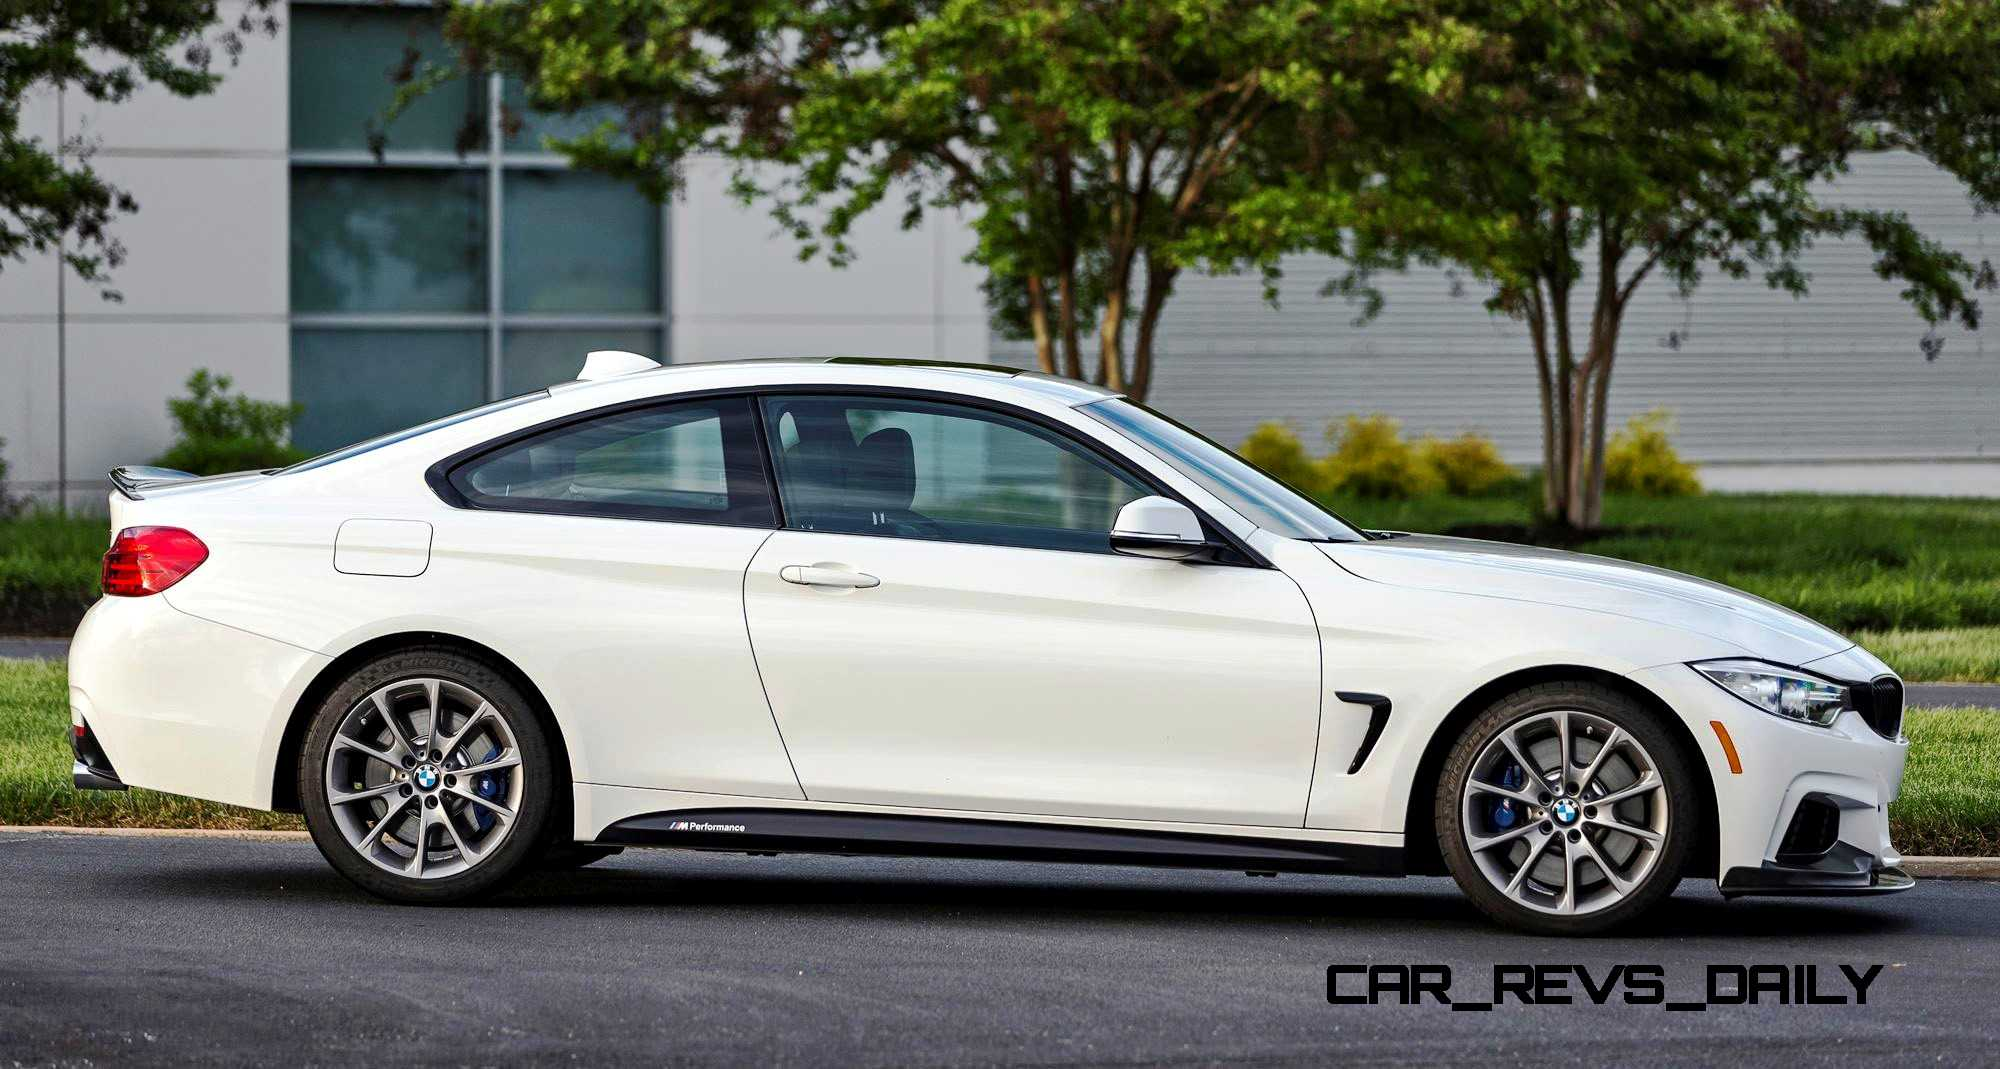 I Coupe ZHP Edition - Bmw 4351 coupe